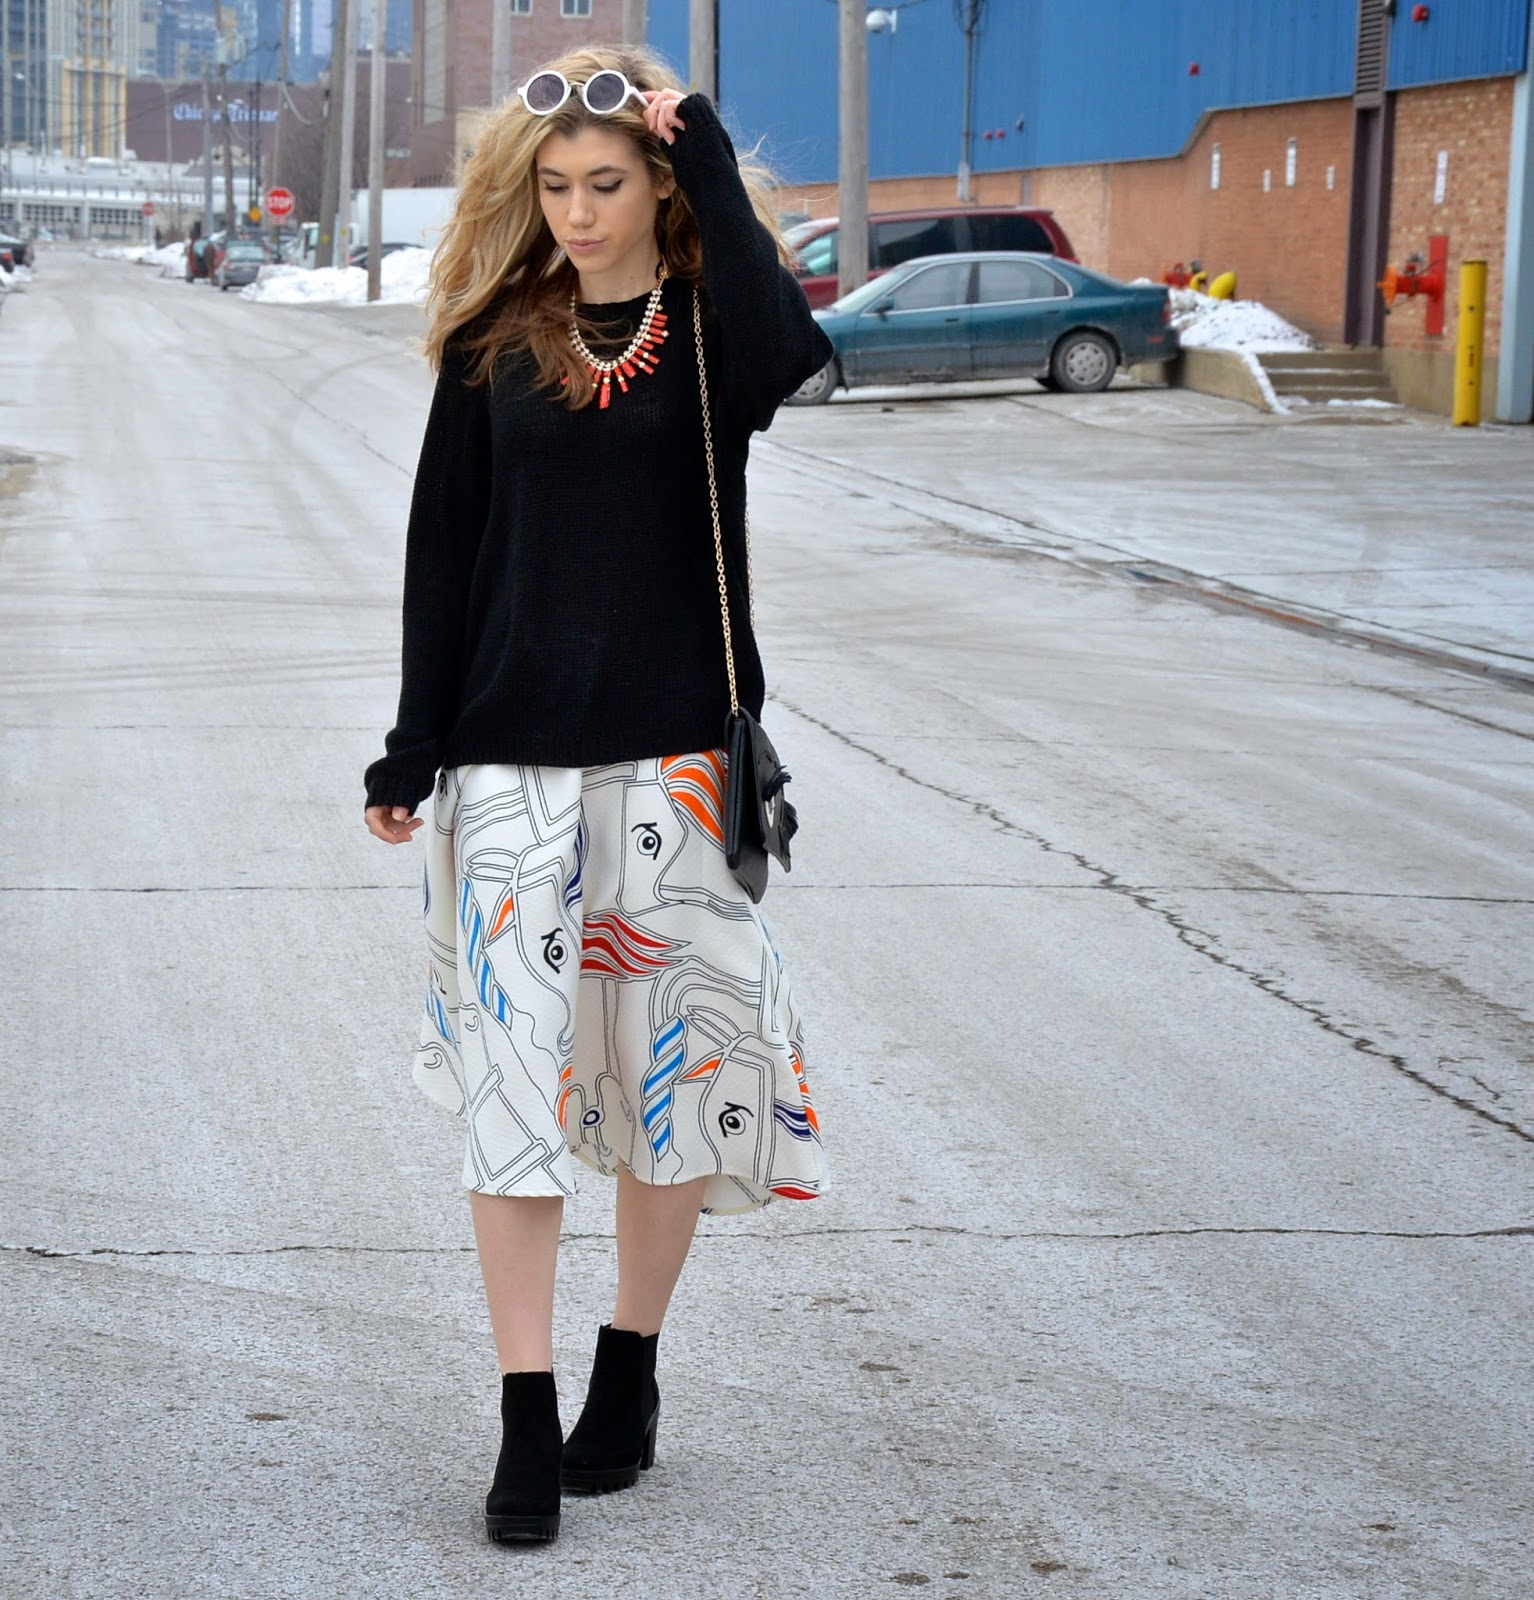 midi skirt, oversized sweater, winter blogger outfit, style blogger, street style